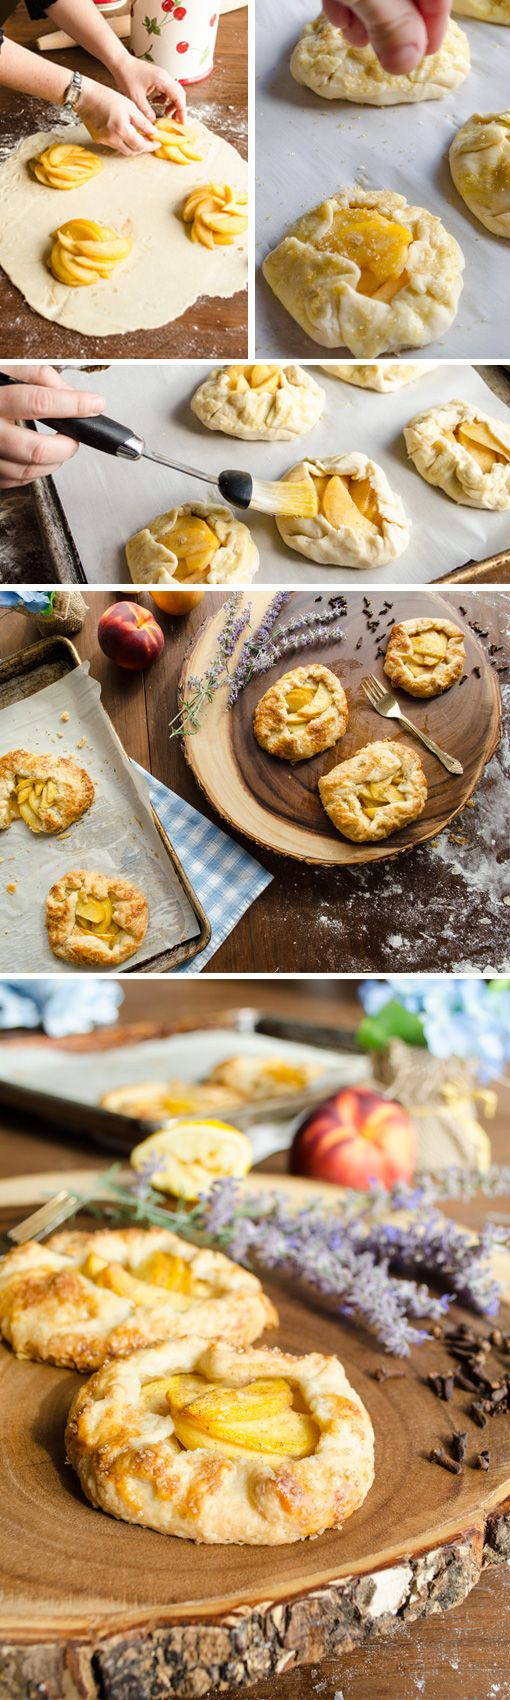 Looking for an easy alternative recipe to homemade peach pie? Try these easy peach mini galettes. They'll satisfy your dessert craving without all the work of a traditional pie.